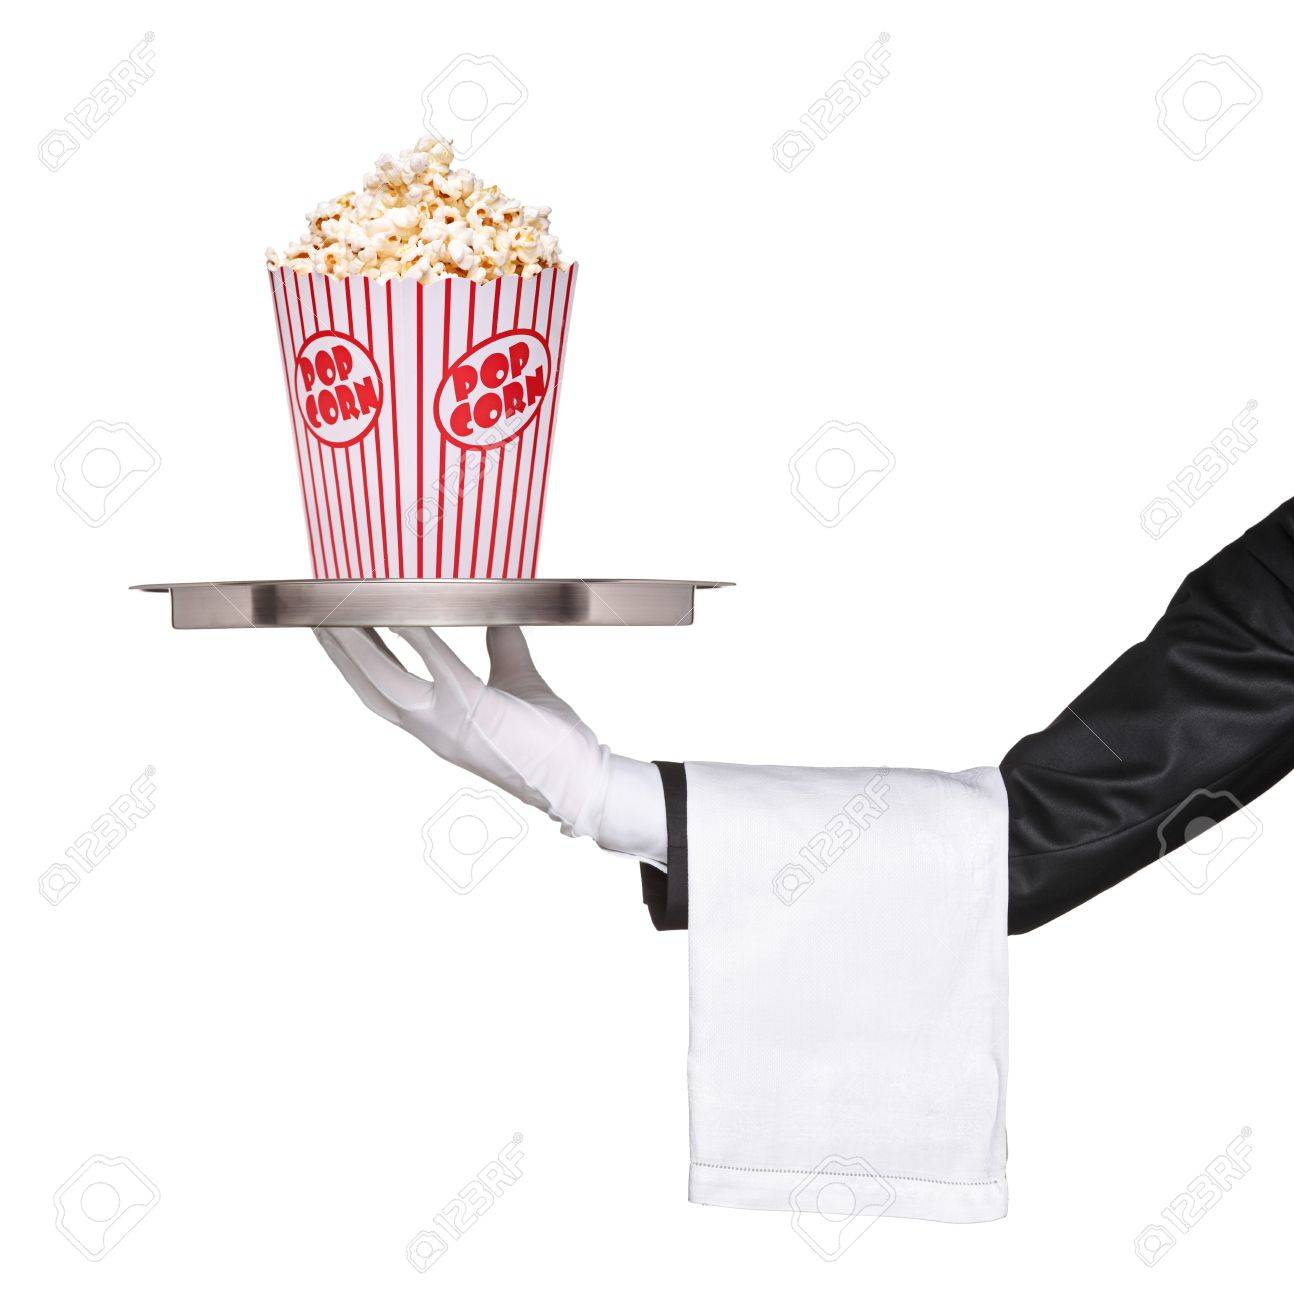 A waiter holding a silver tray with popcorn box on it isolated on white background Stock Photo - 10105413